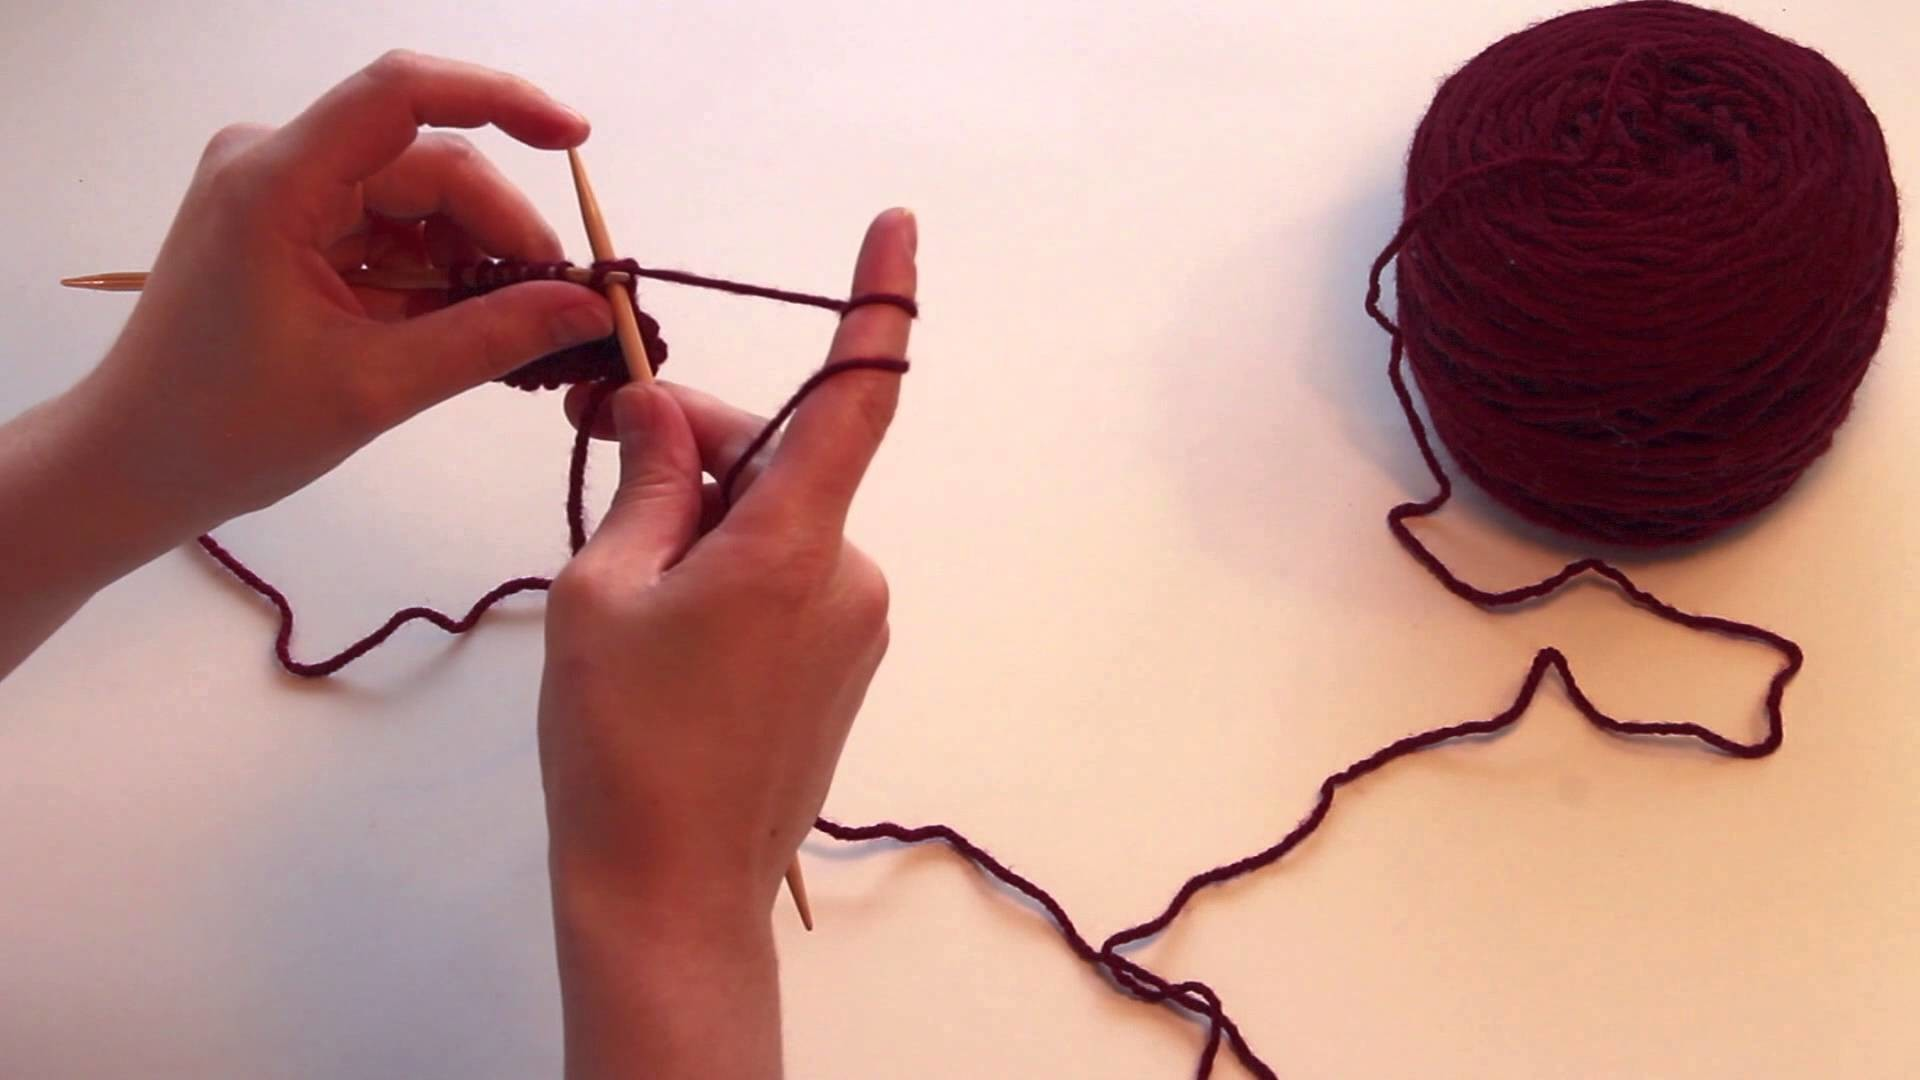 Knitting Tutorial for Beginners: Bind Off or Cast Off